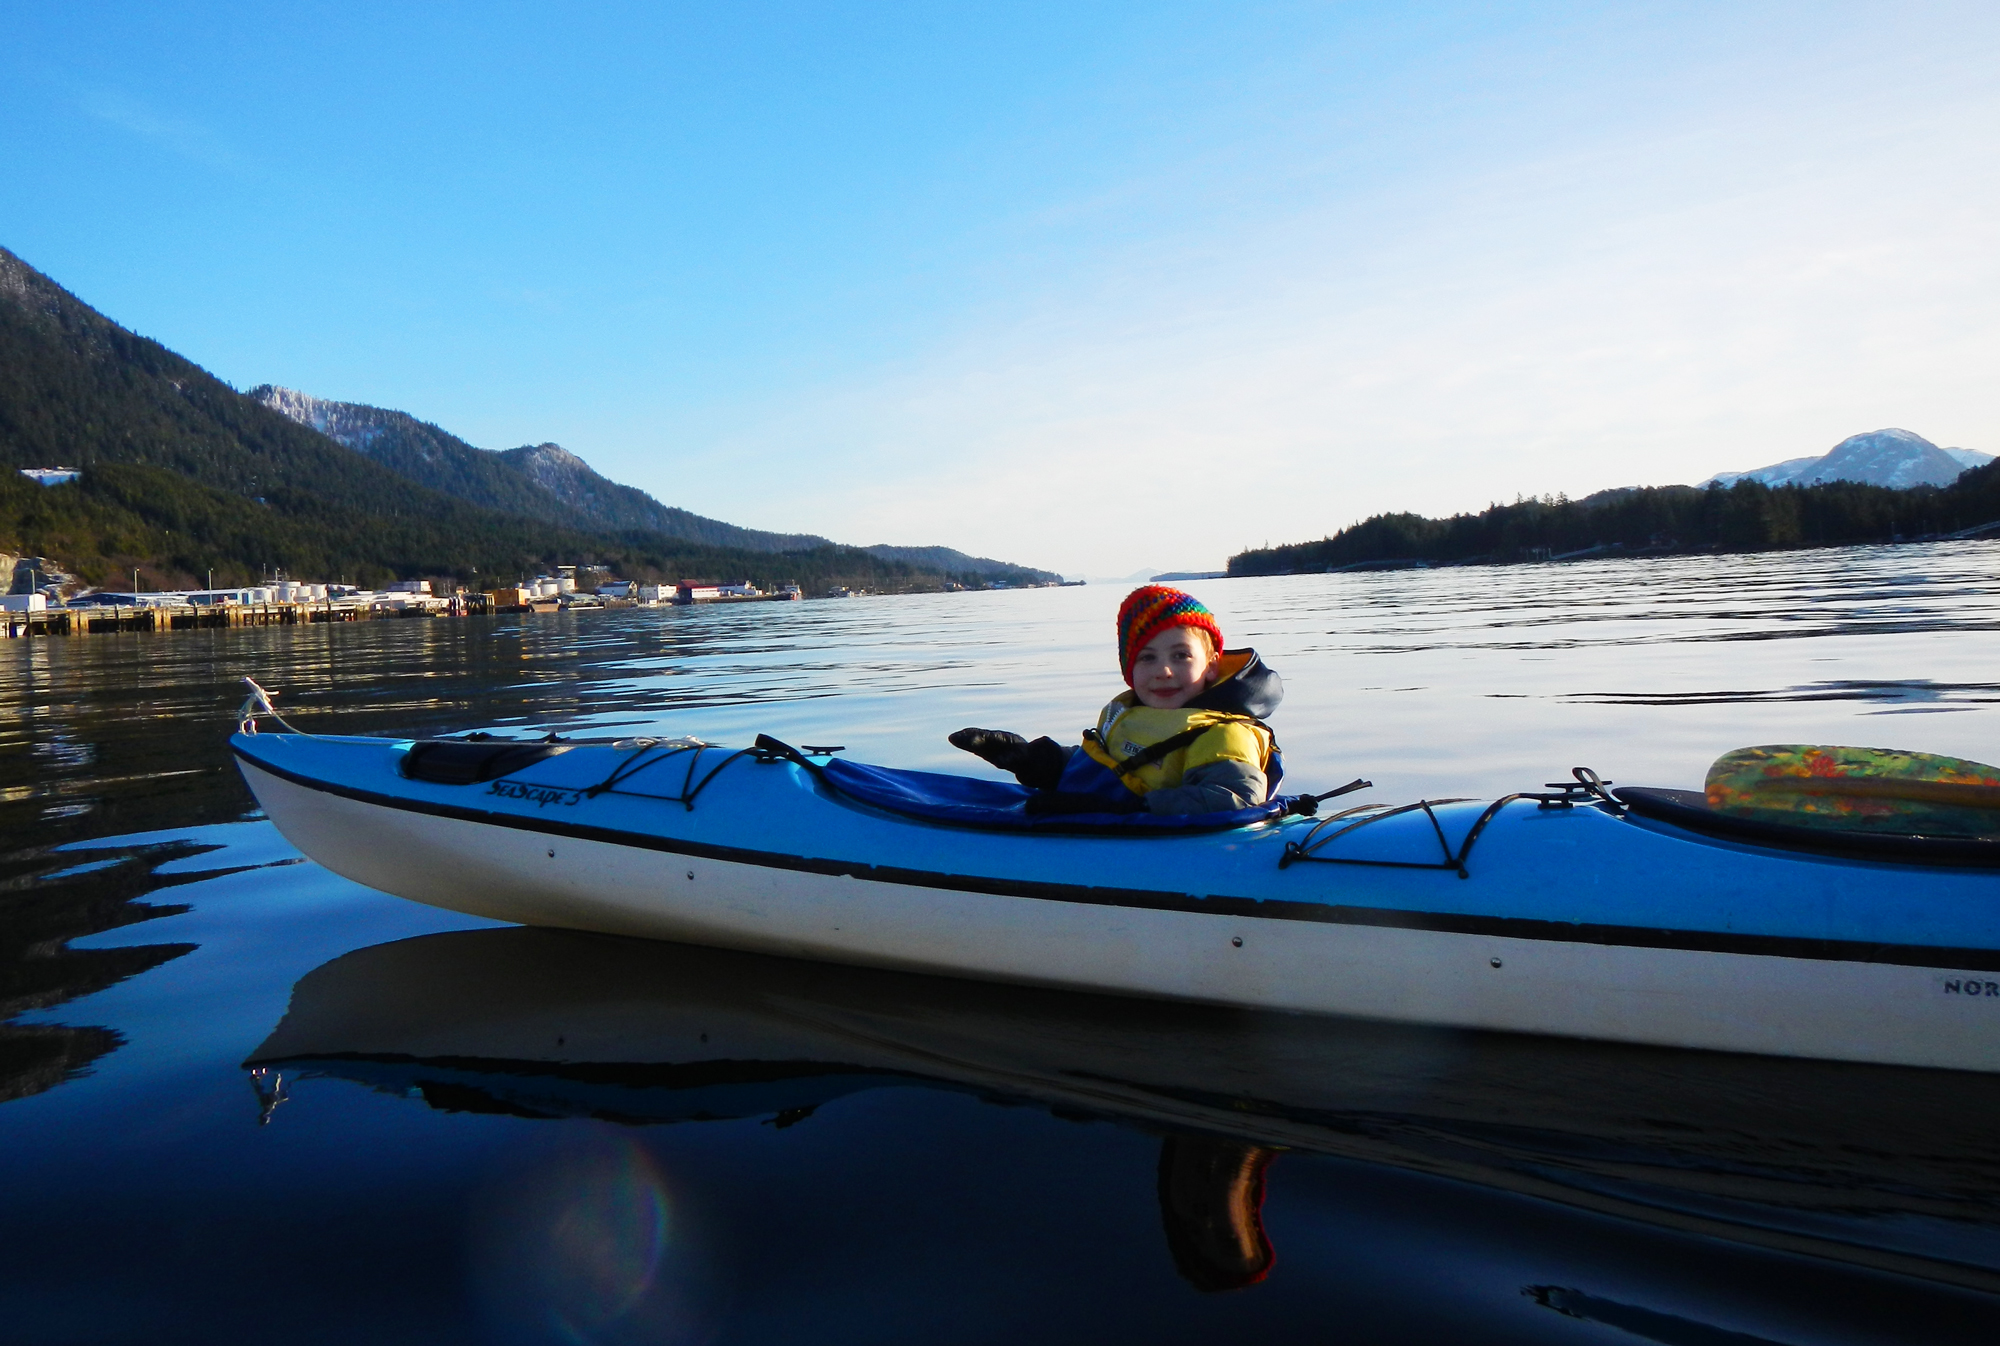 It's not that cold! We really do get a few beautiful days for paddling in the winter.